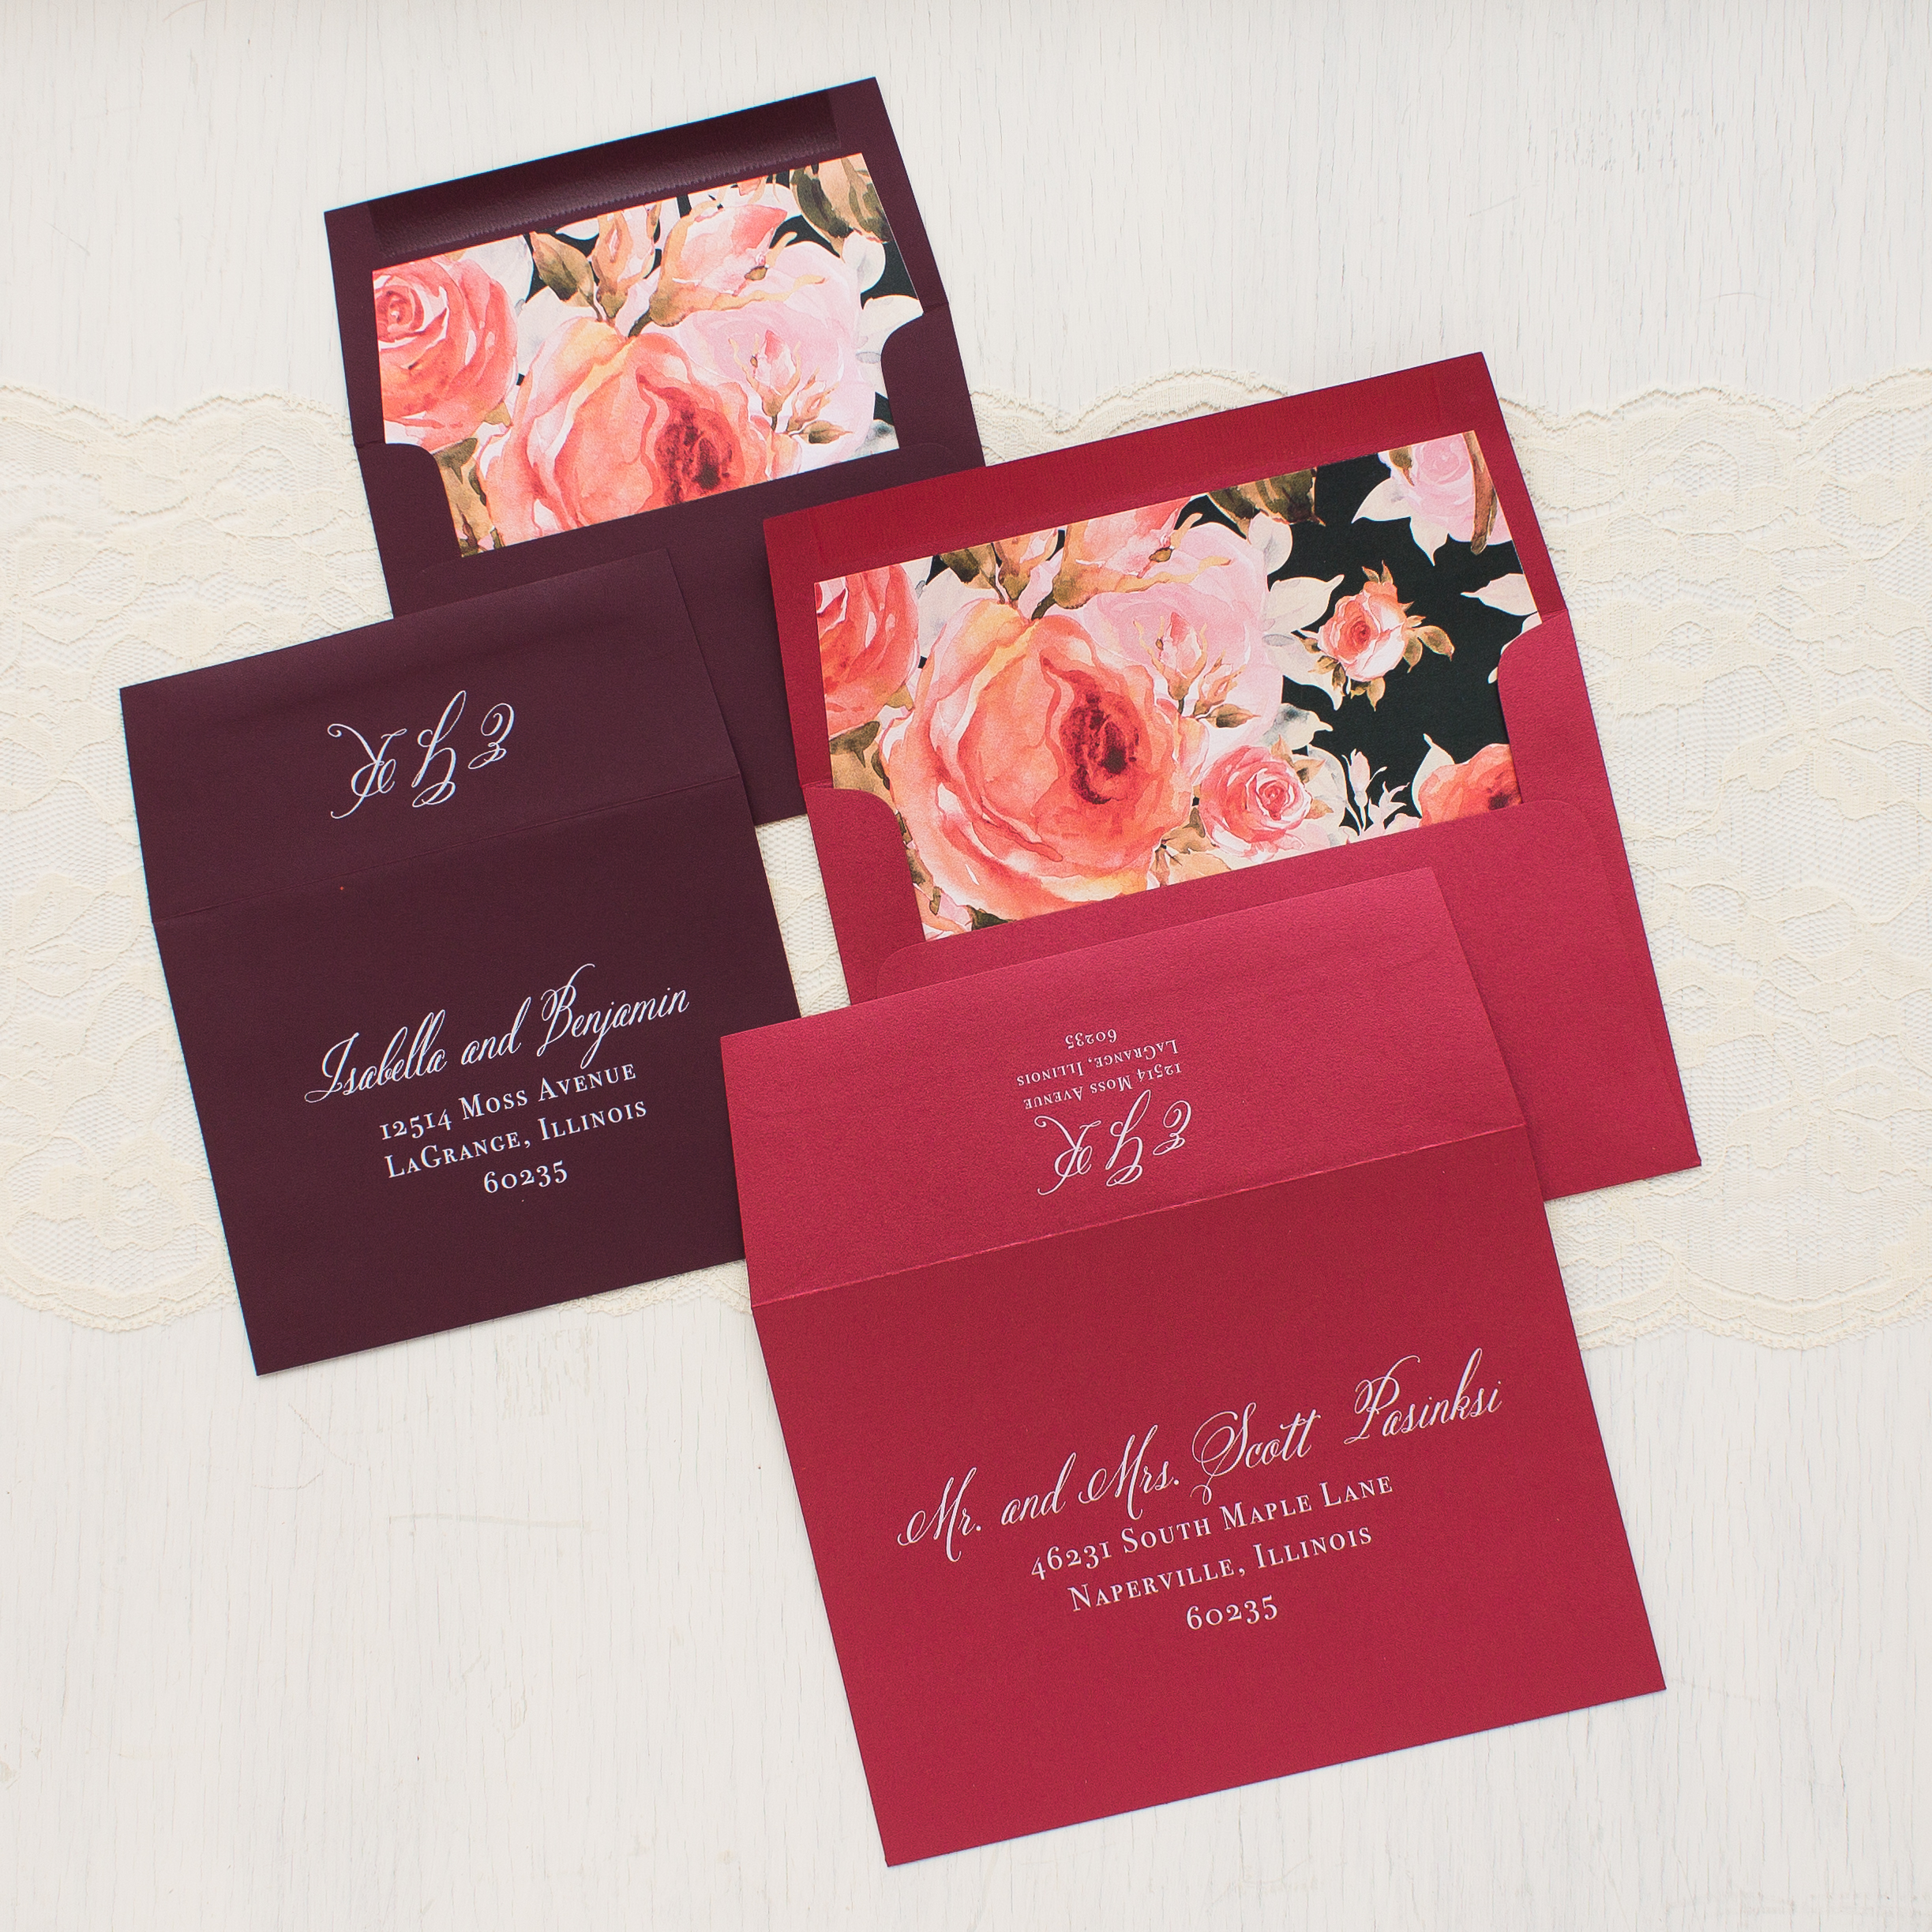 Blush Petals Wedding Invitations | Beacon Lane